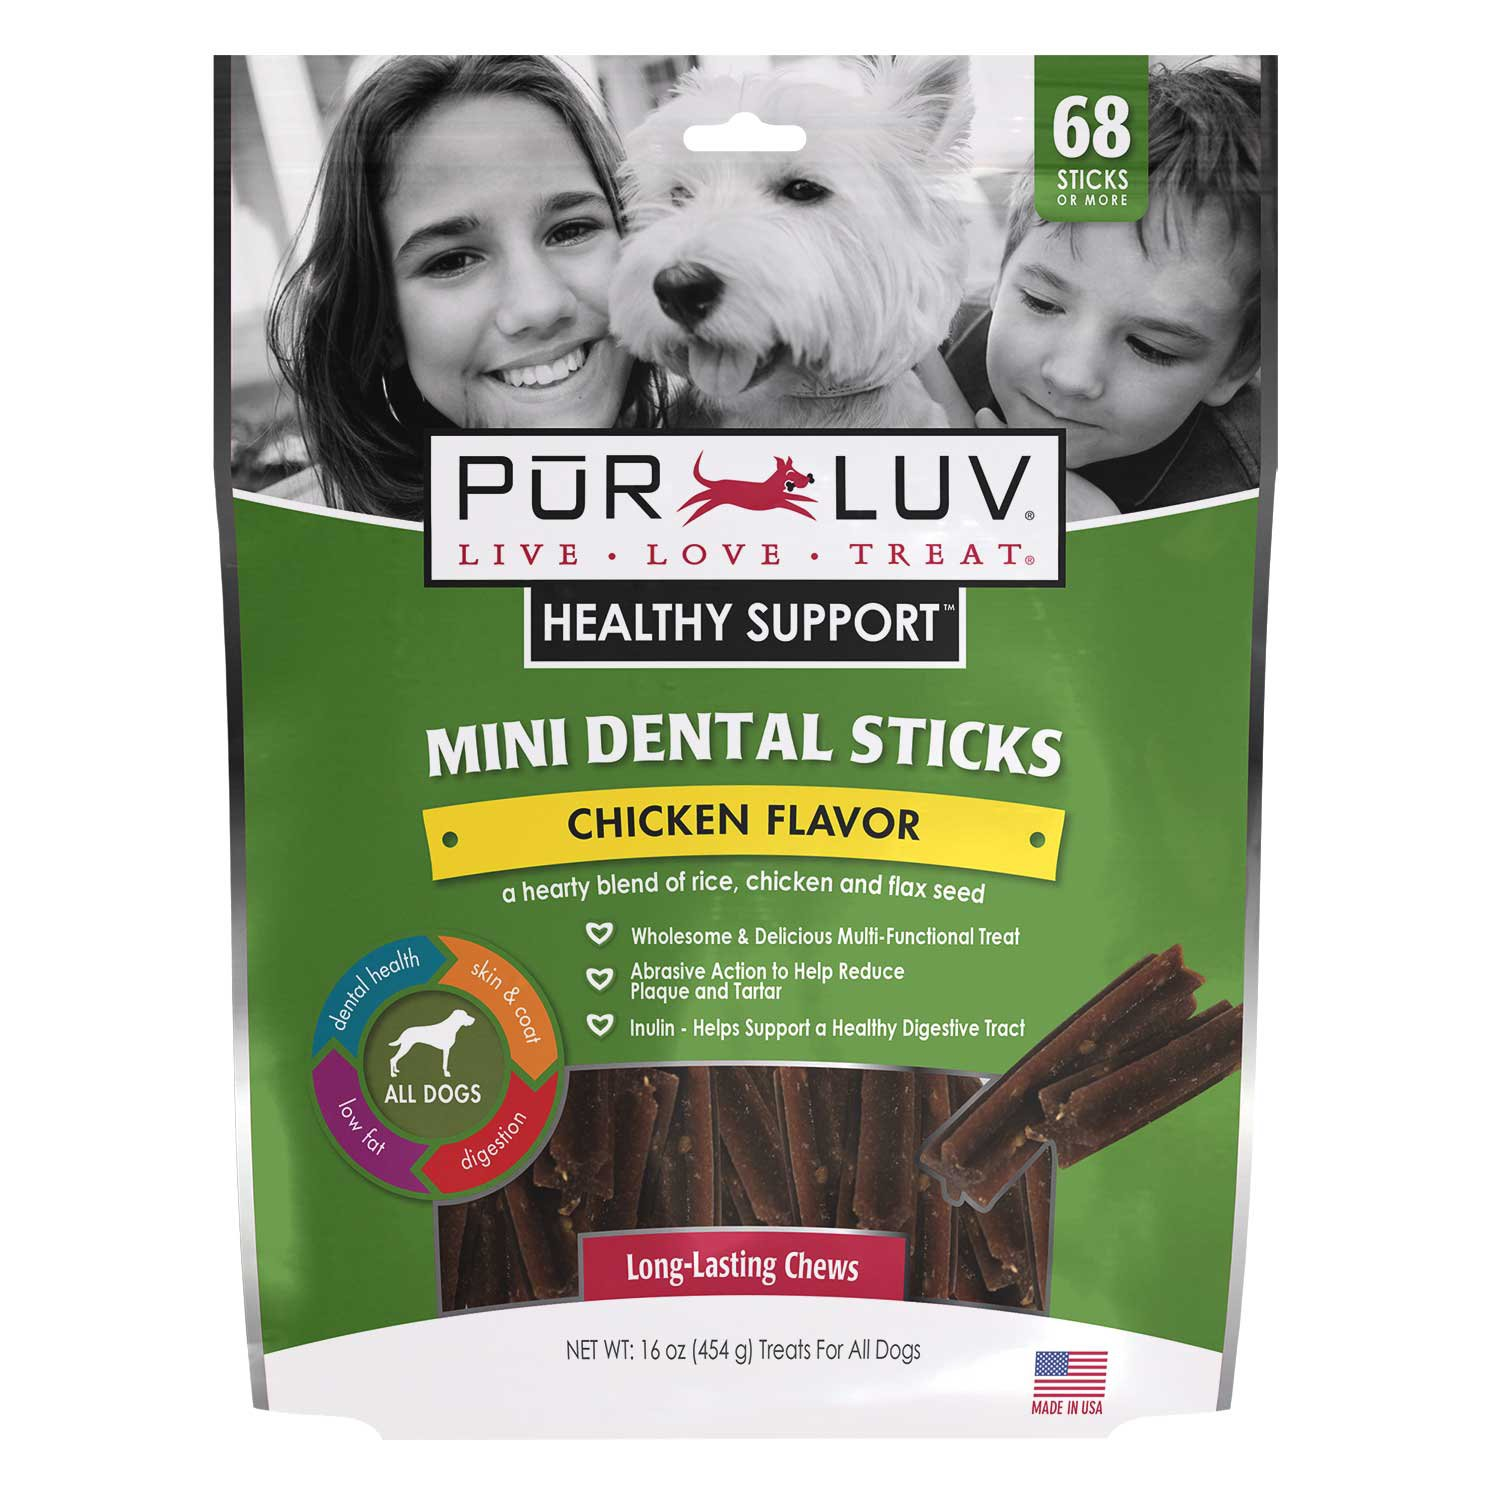 Pur Luv Mini Dental Sticks for Dogs